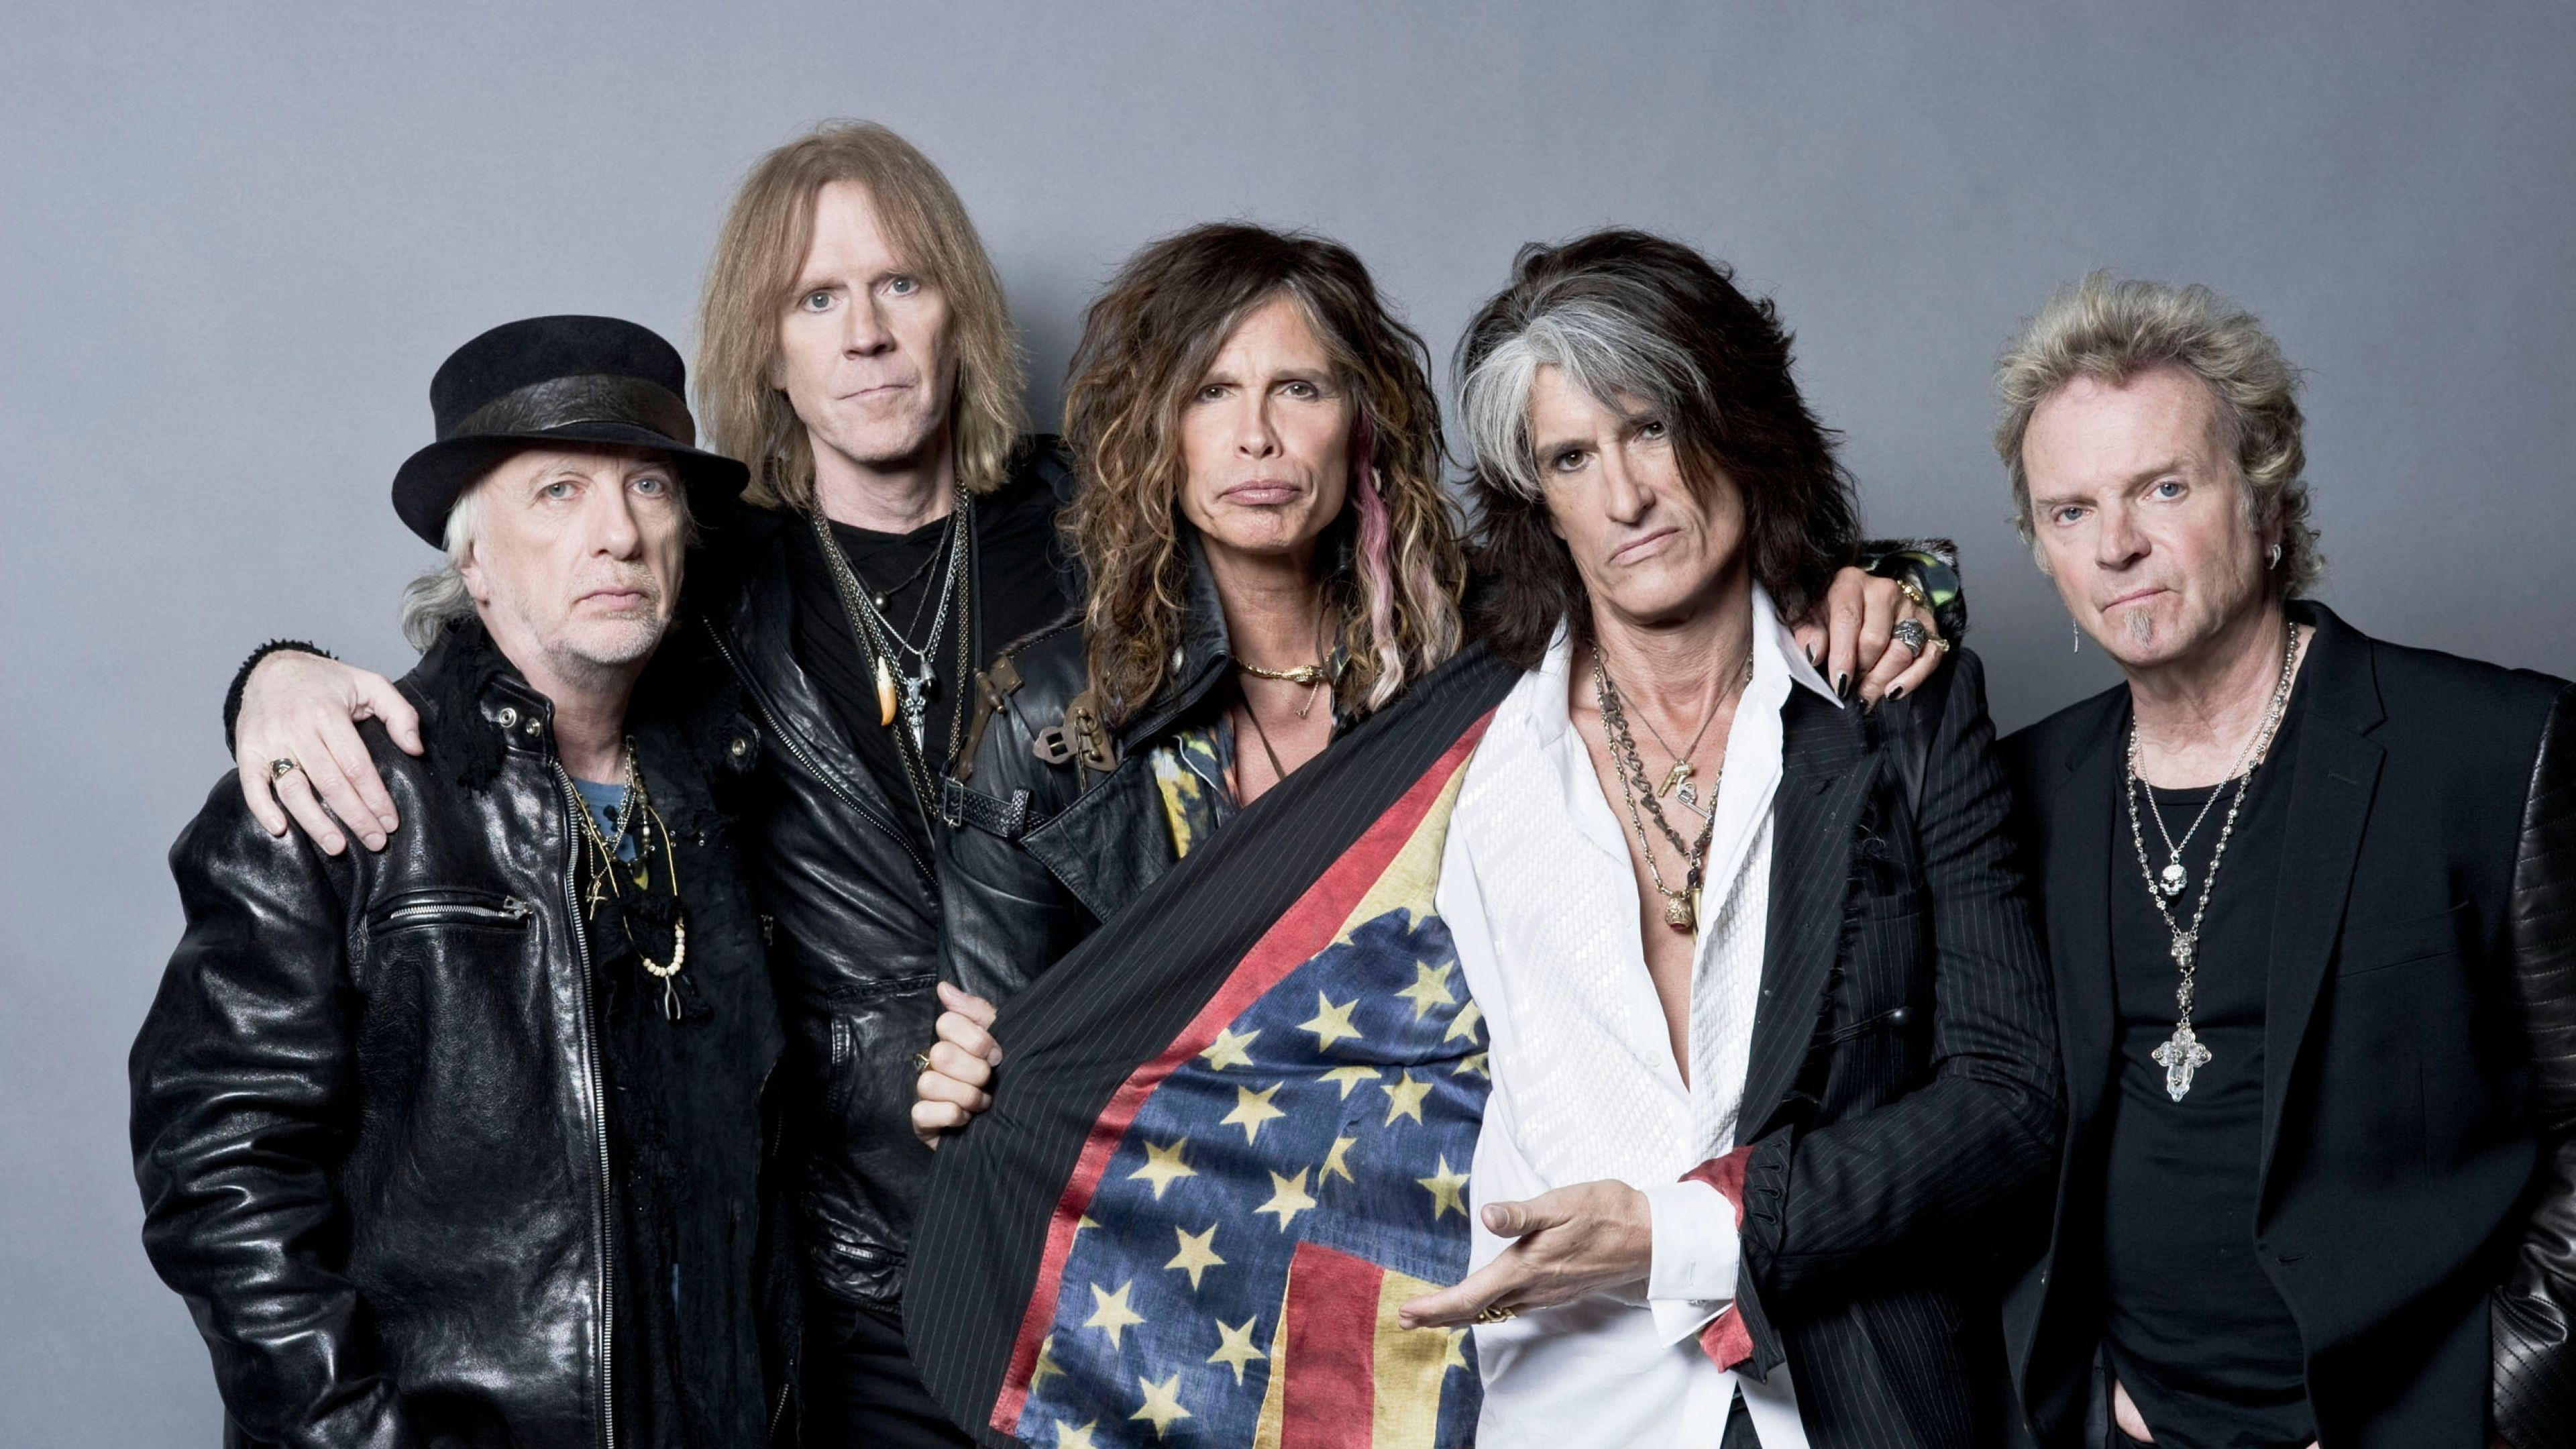 Download Wallpapers 3840x2160 Aerosmith, Rock band, Steven tyler